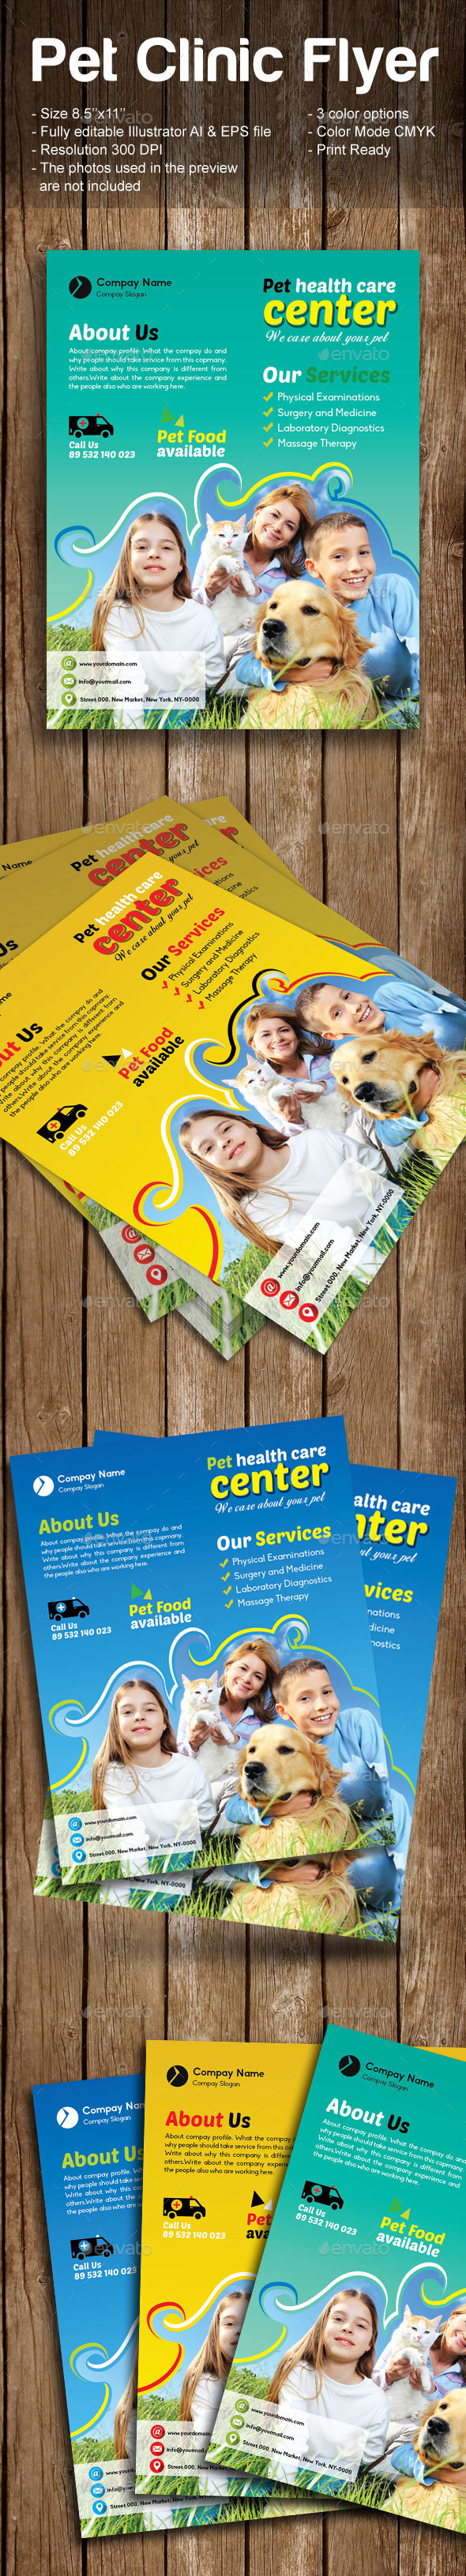 Pet Clinic Flyer - Commerce Flyers